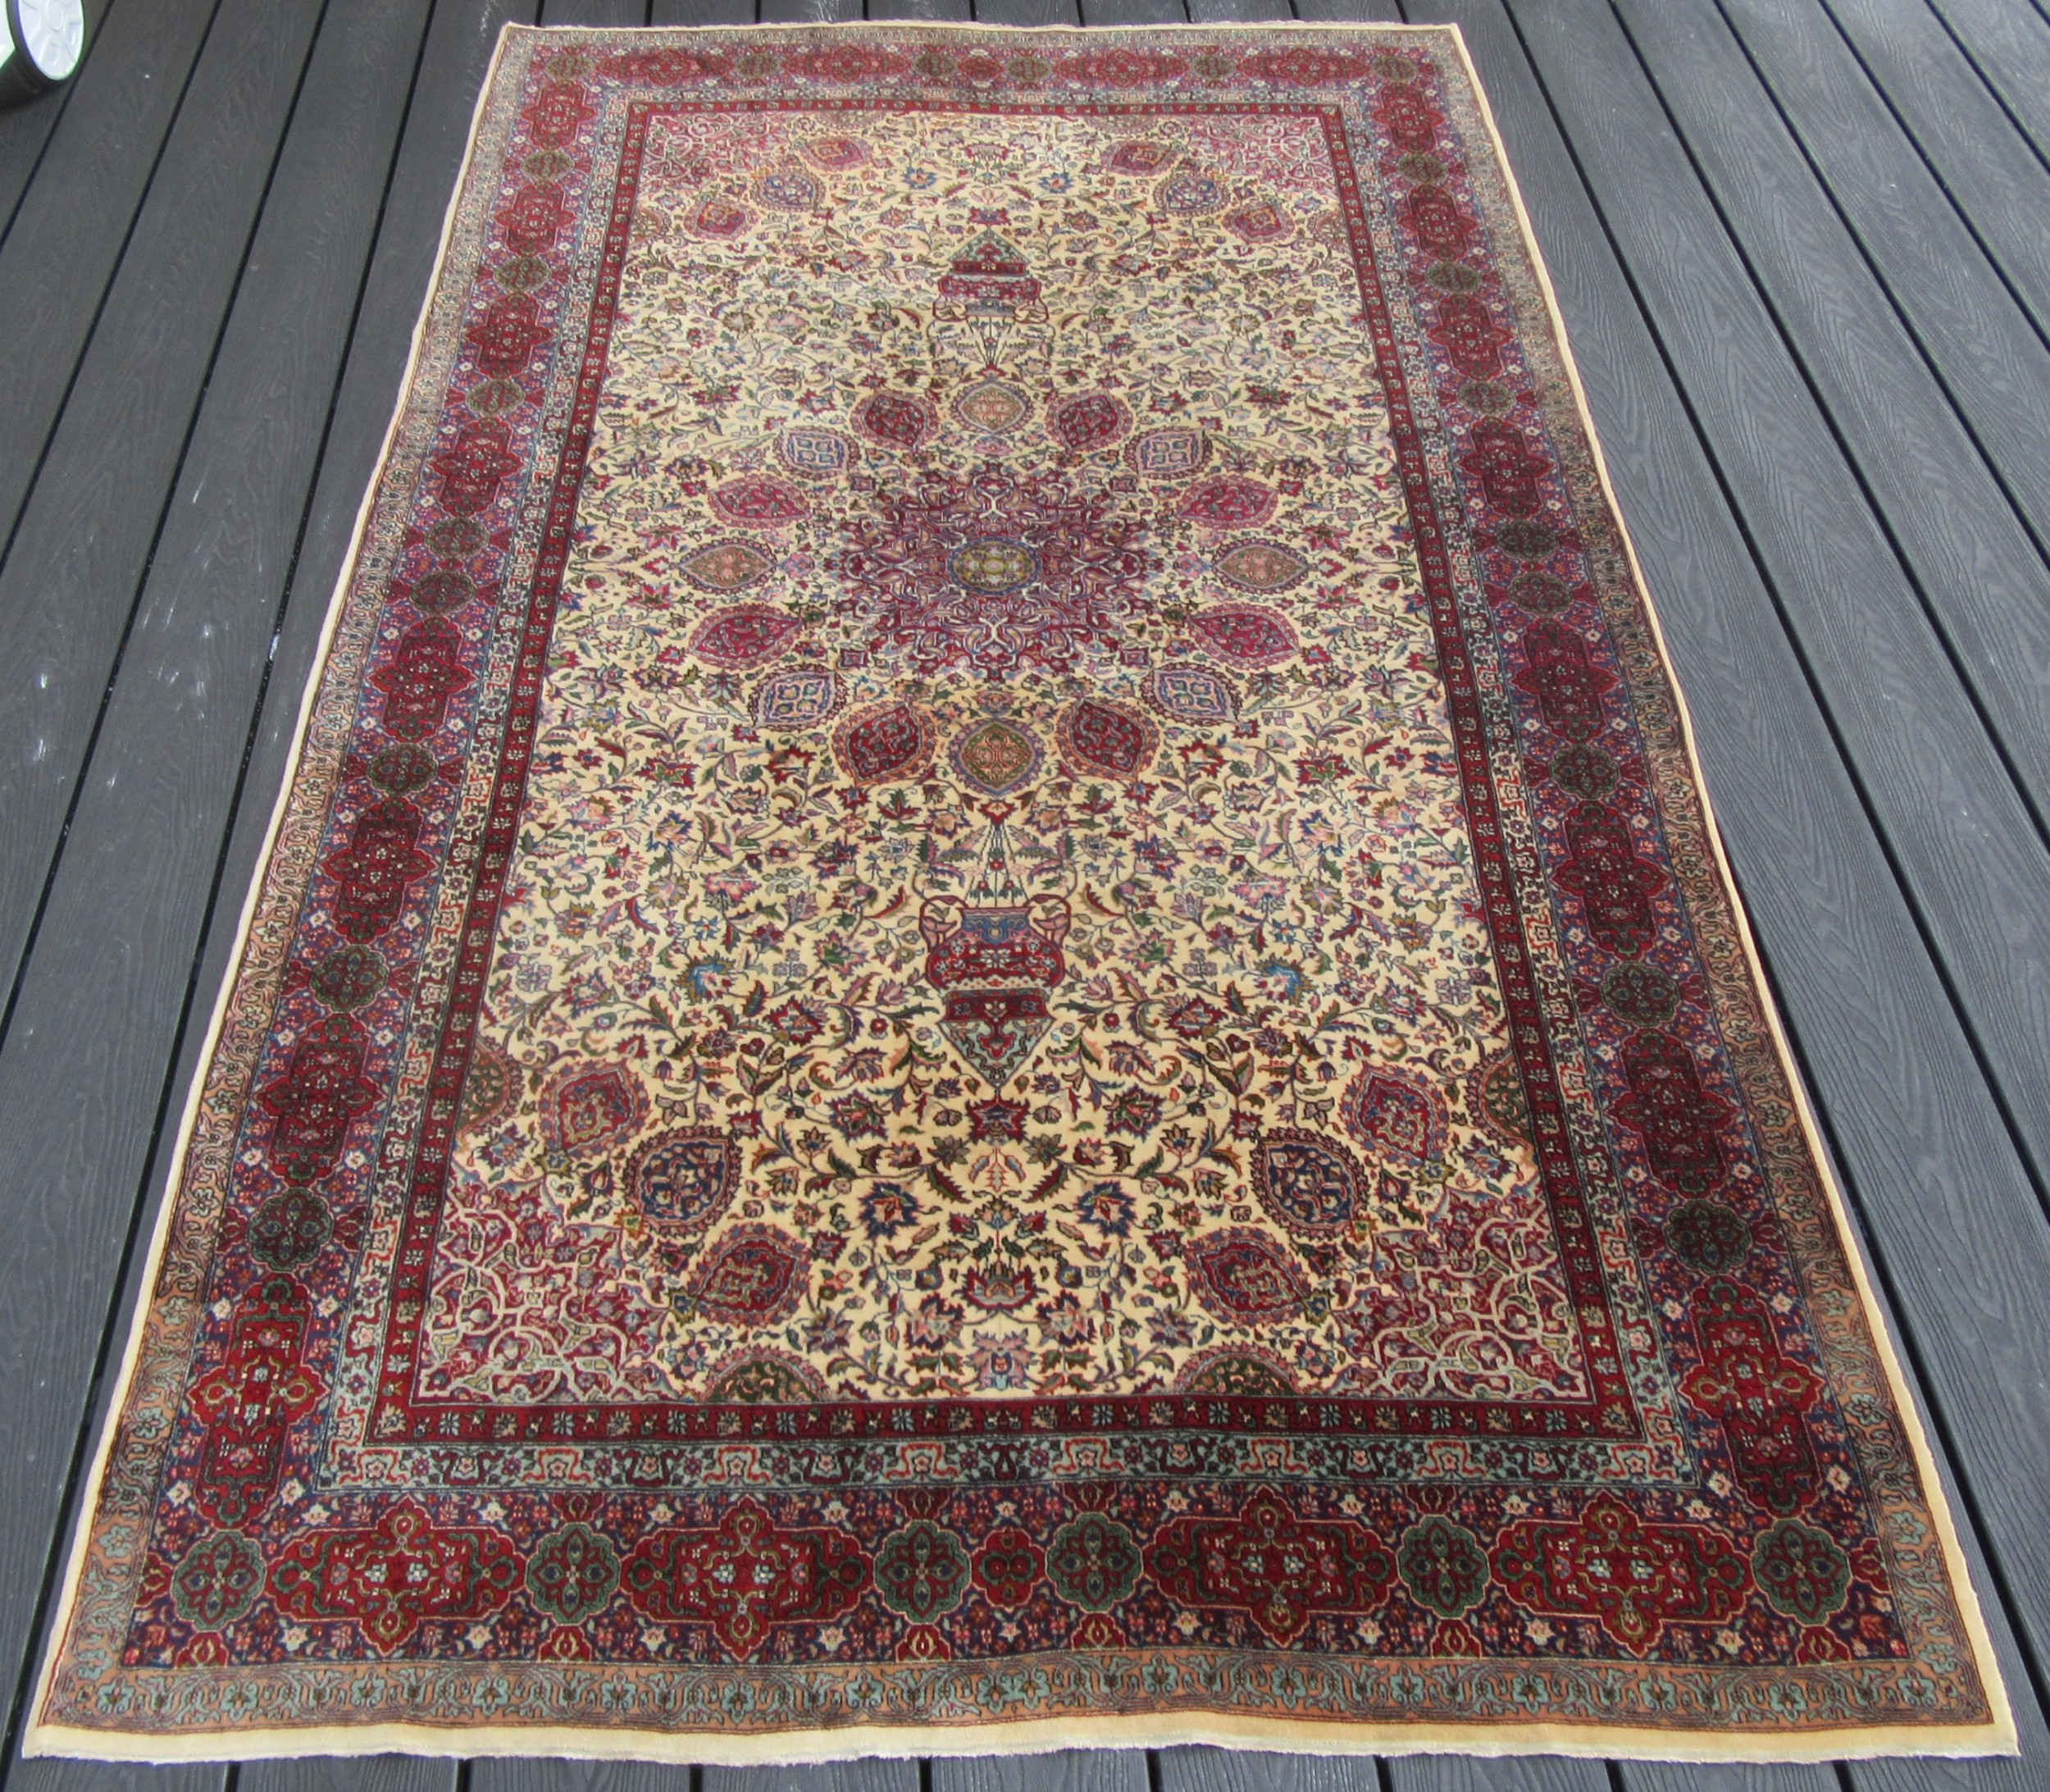 very very fine antique indo persian indian rug of ardabil design very fine kurk wool pile